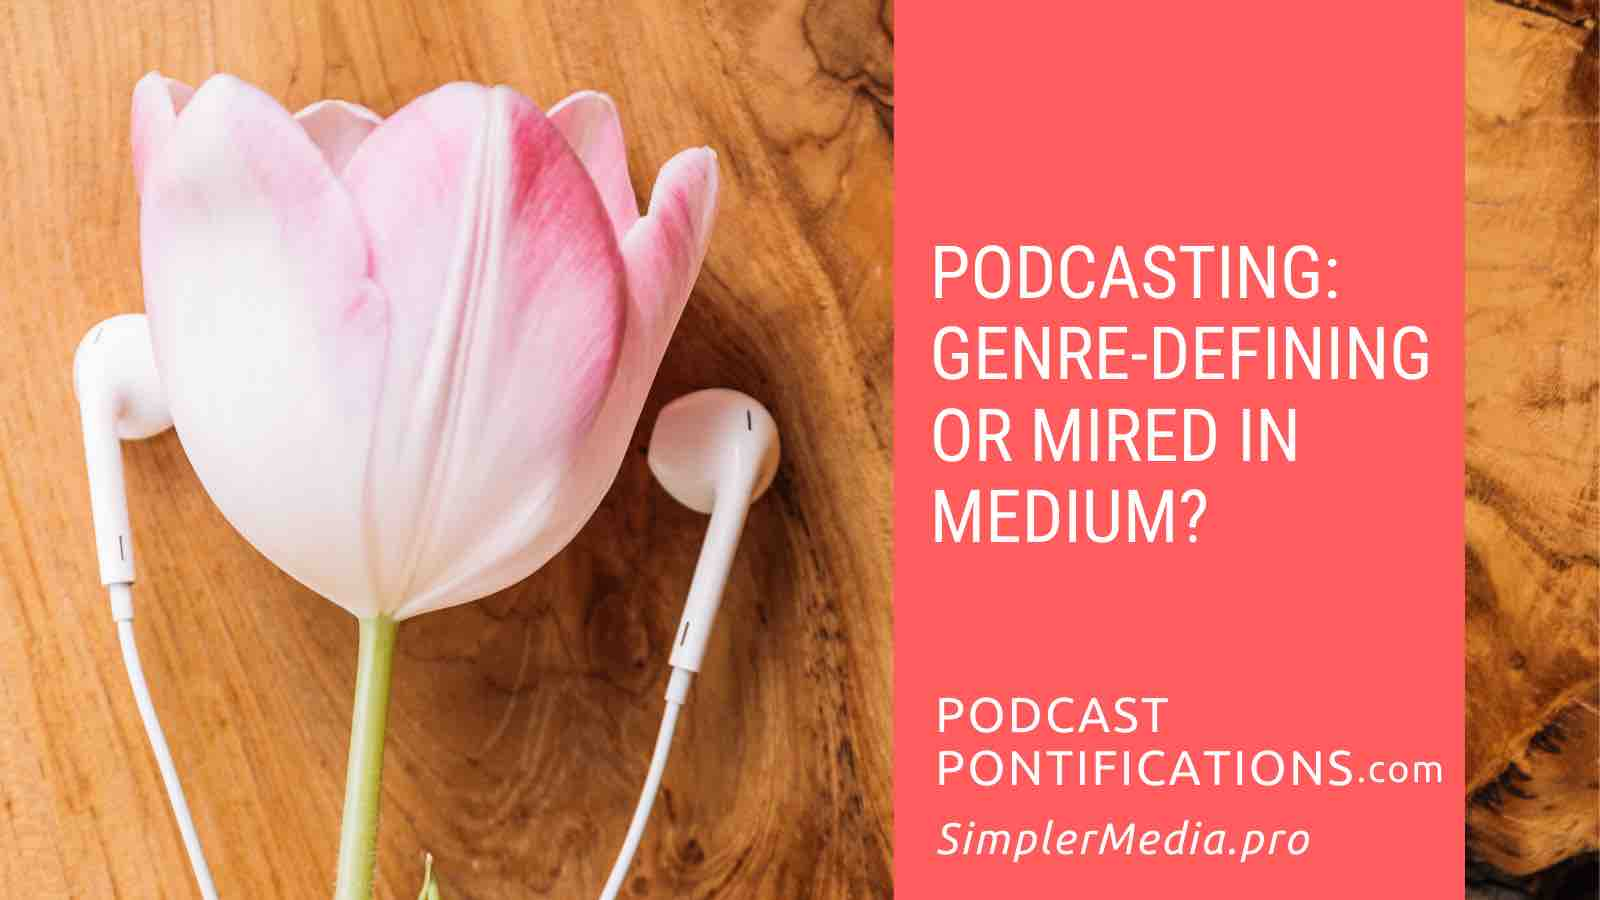 Podcasting: Genre-Defining Or Mired In Medium?